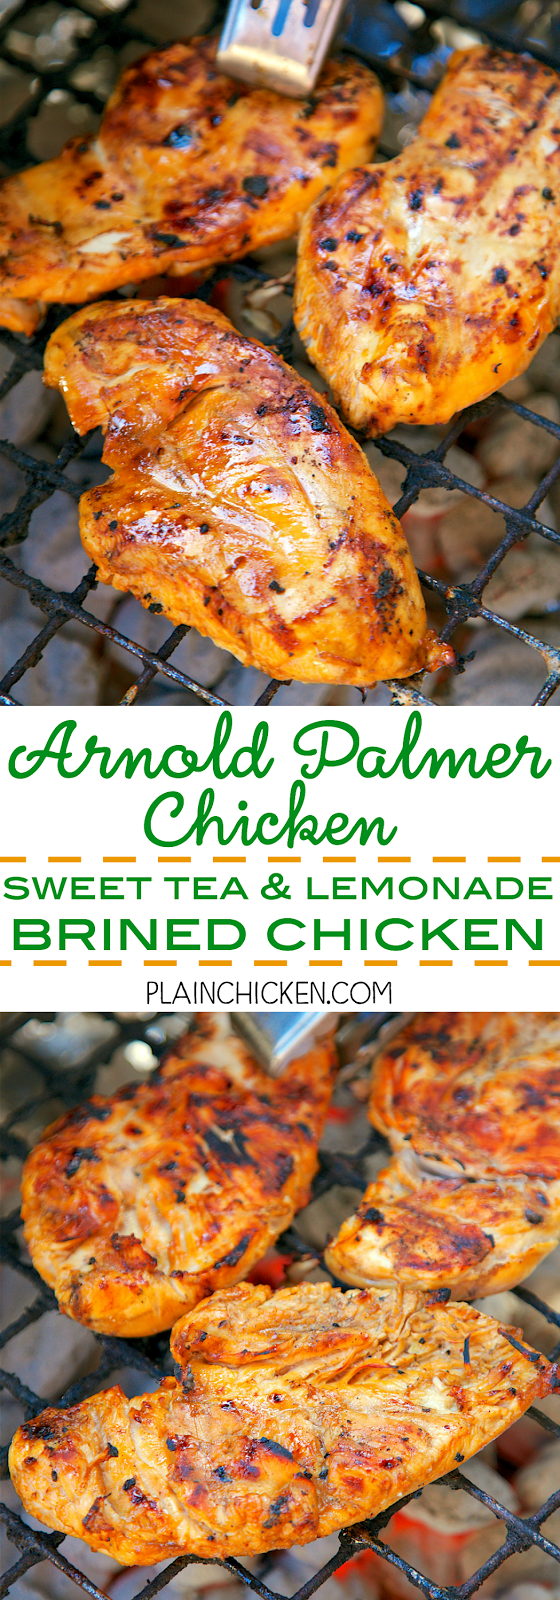 Arnold Palmer Chicken {Sweet Tea and Lemonade Brined Chicken} - let the chicken sit in the brine overnight and then grill. SO good! Tons of great flavor! This gets requested weekly at our house. It is definitely a new favorite!